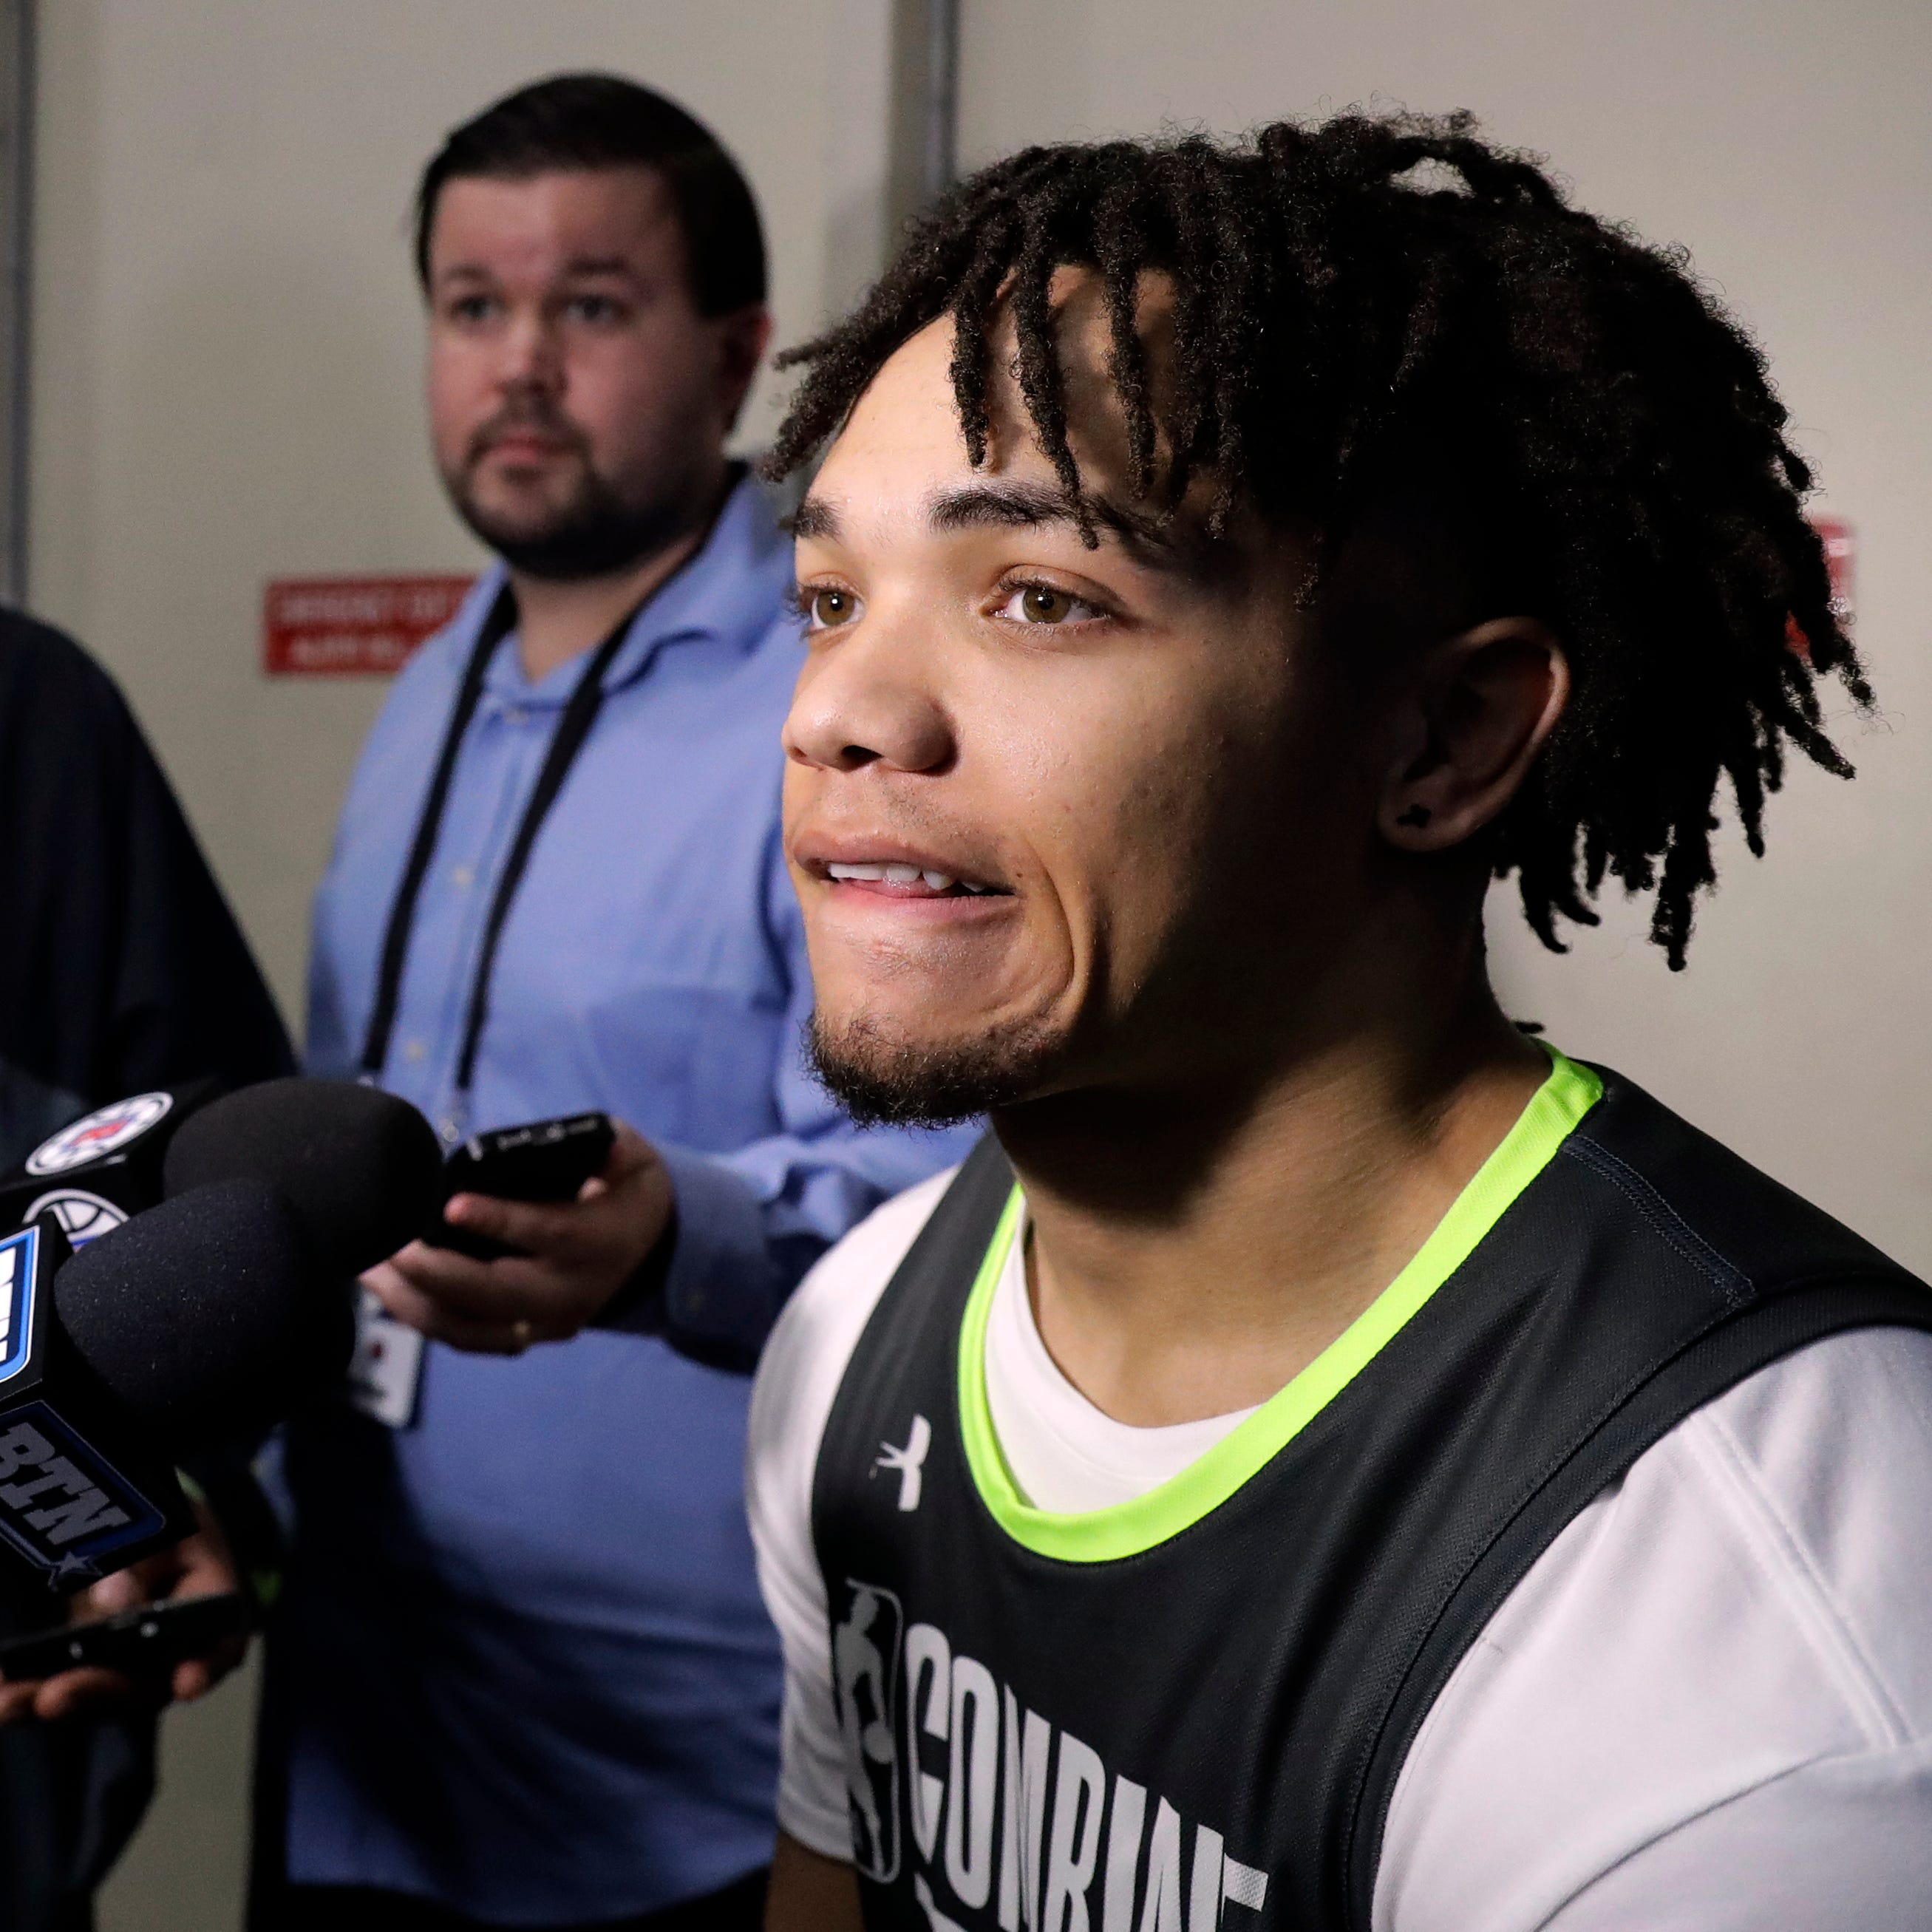 Whatever his role, Purdue's Carsen Edwards looking to impress NBA teams in draft process